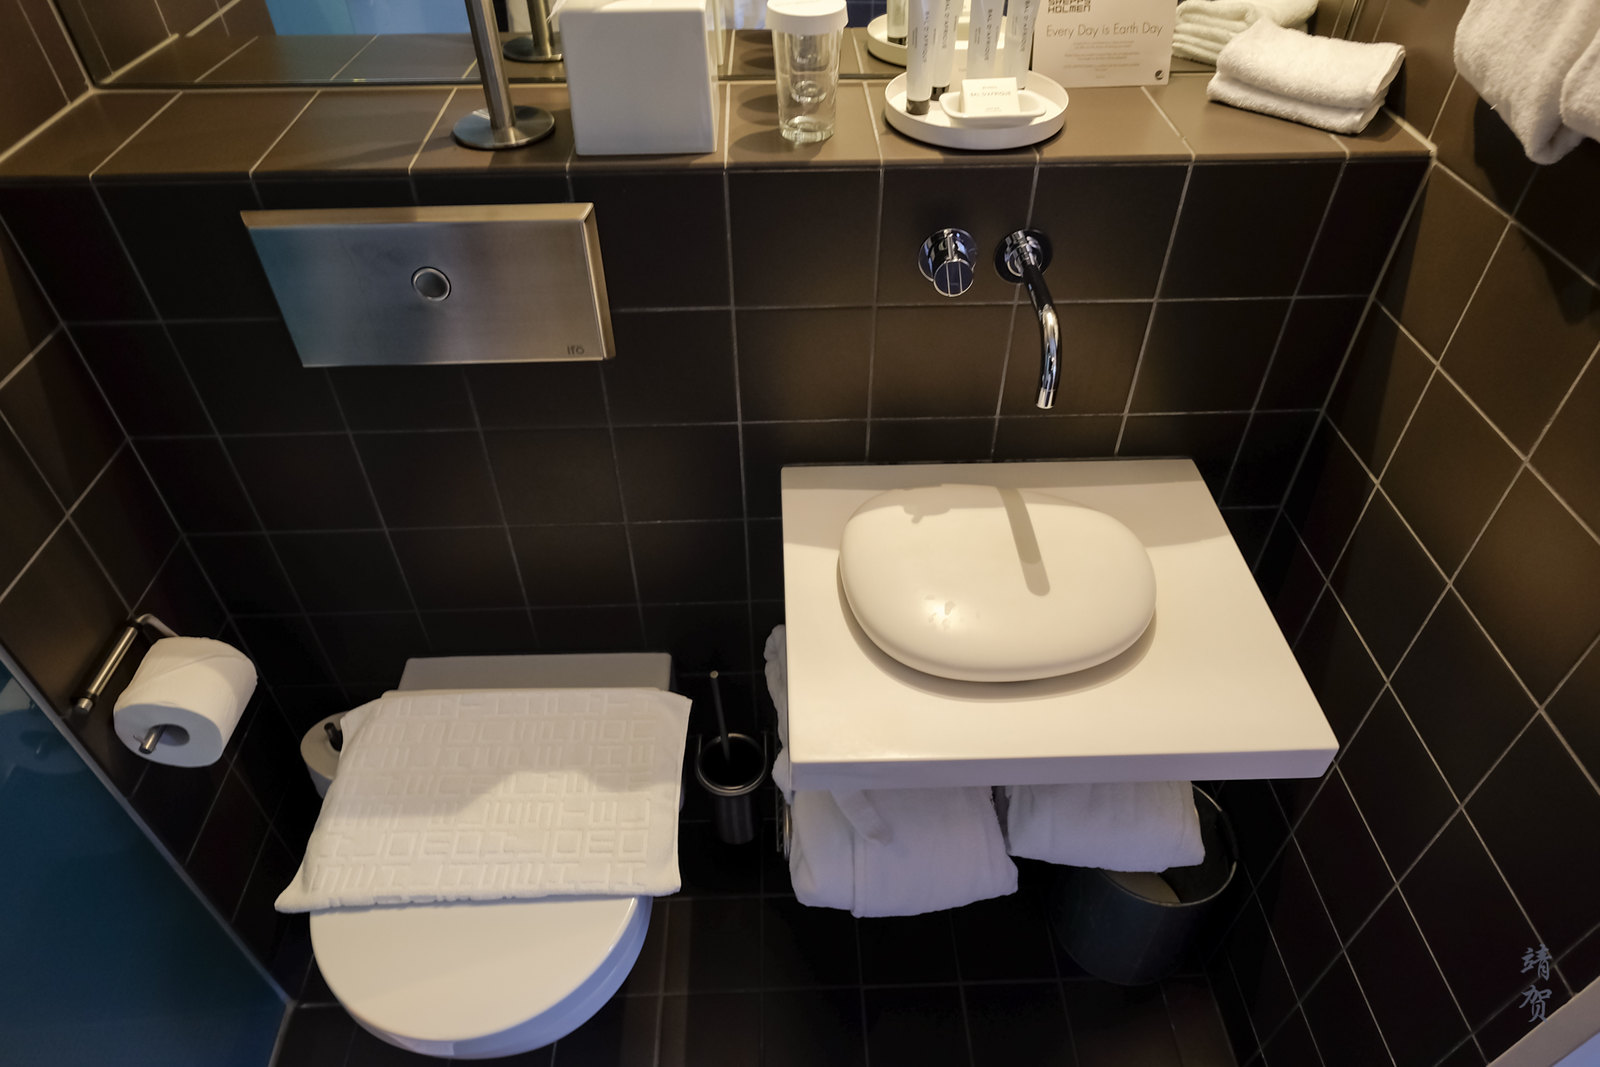 Unique sink and toilet